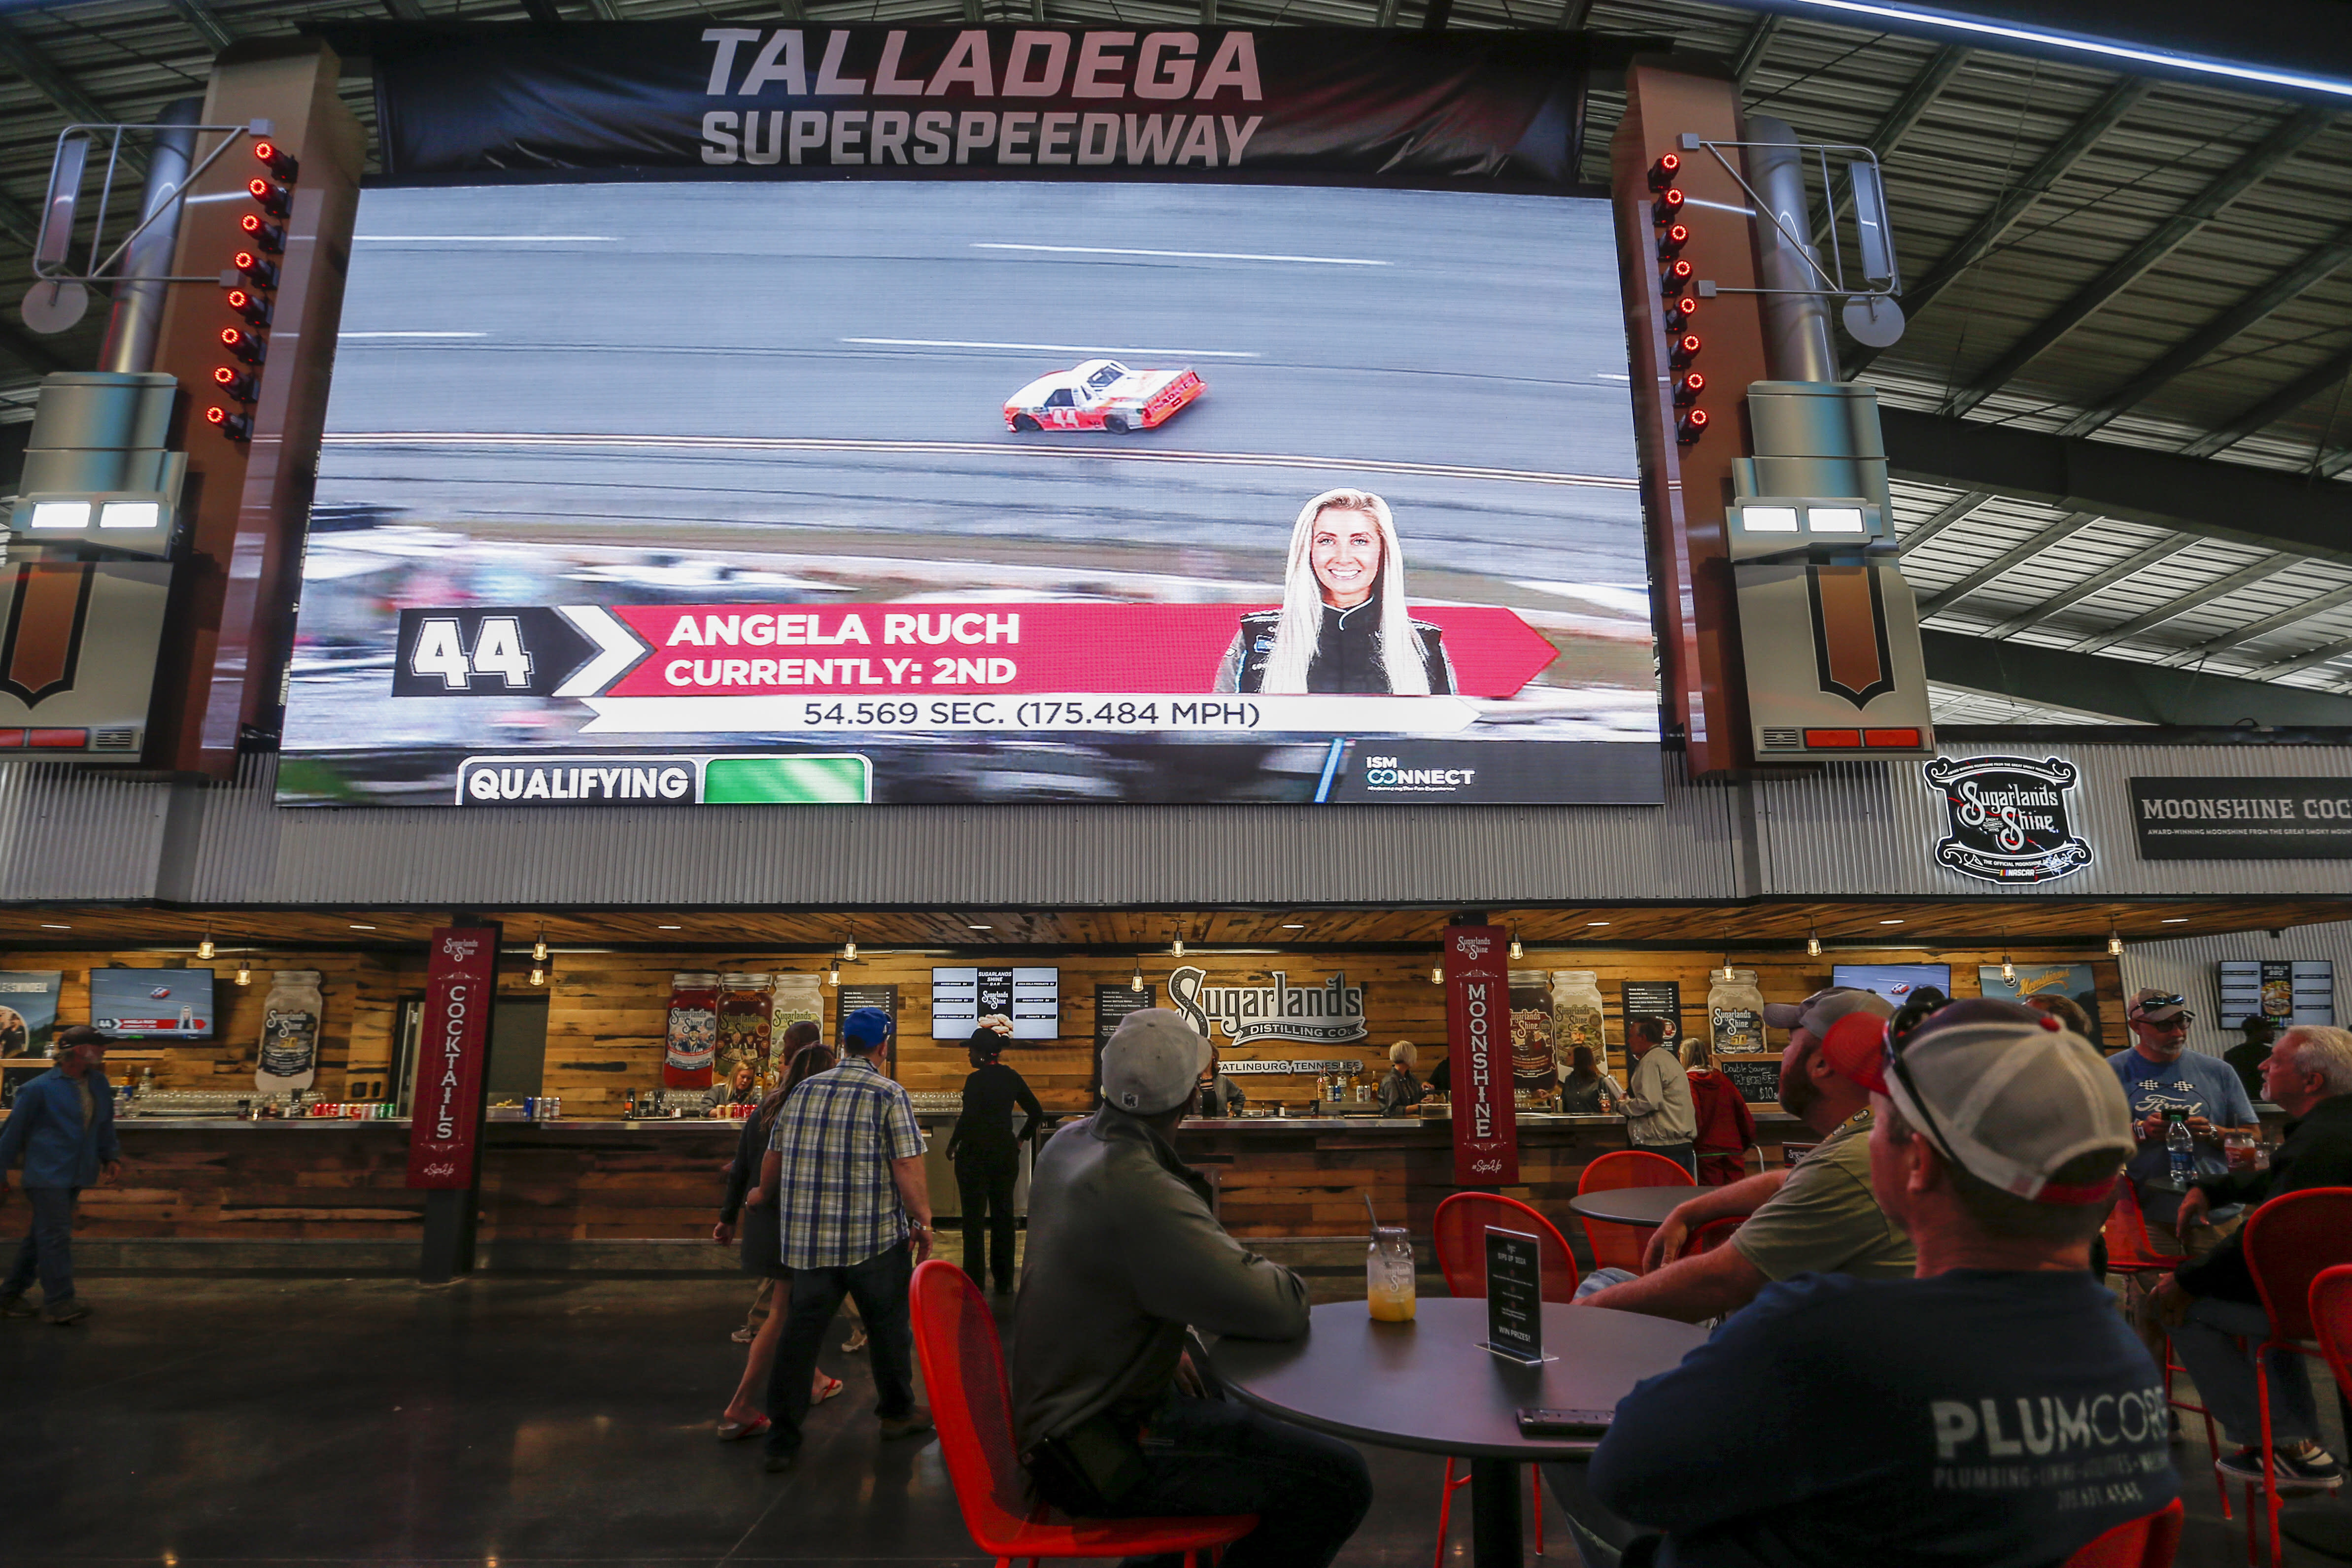 Fans explore the new facilities and garages at Talladega Superspeedway, Saturday, Oct. 12, 2019, in Talladega, Ala. (AP Photo/Butch Dill)